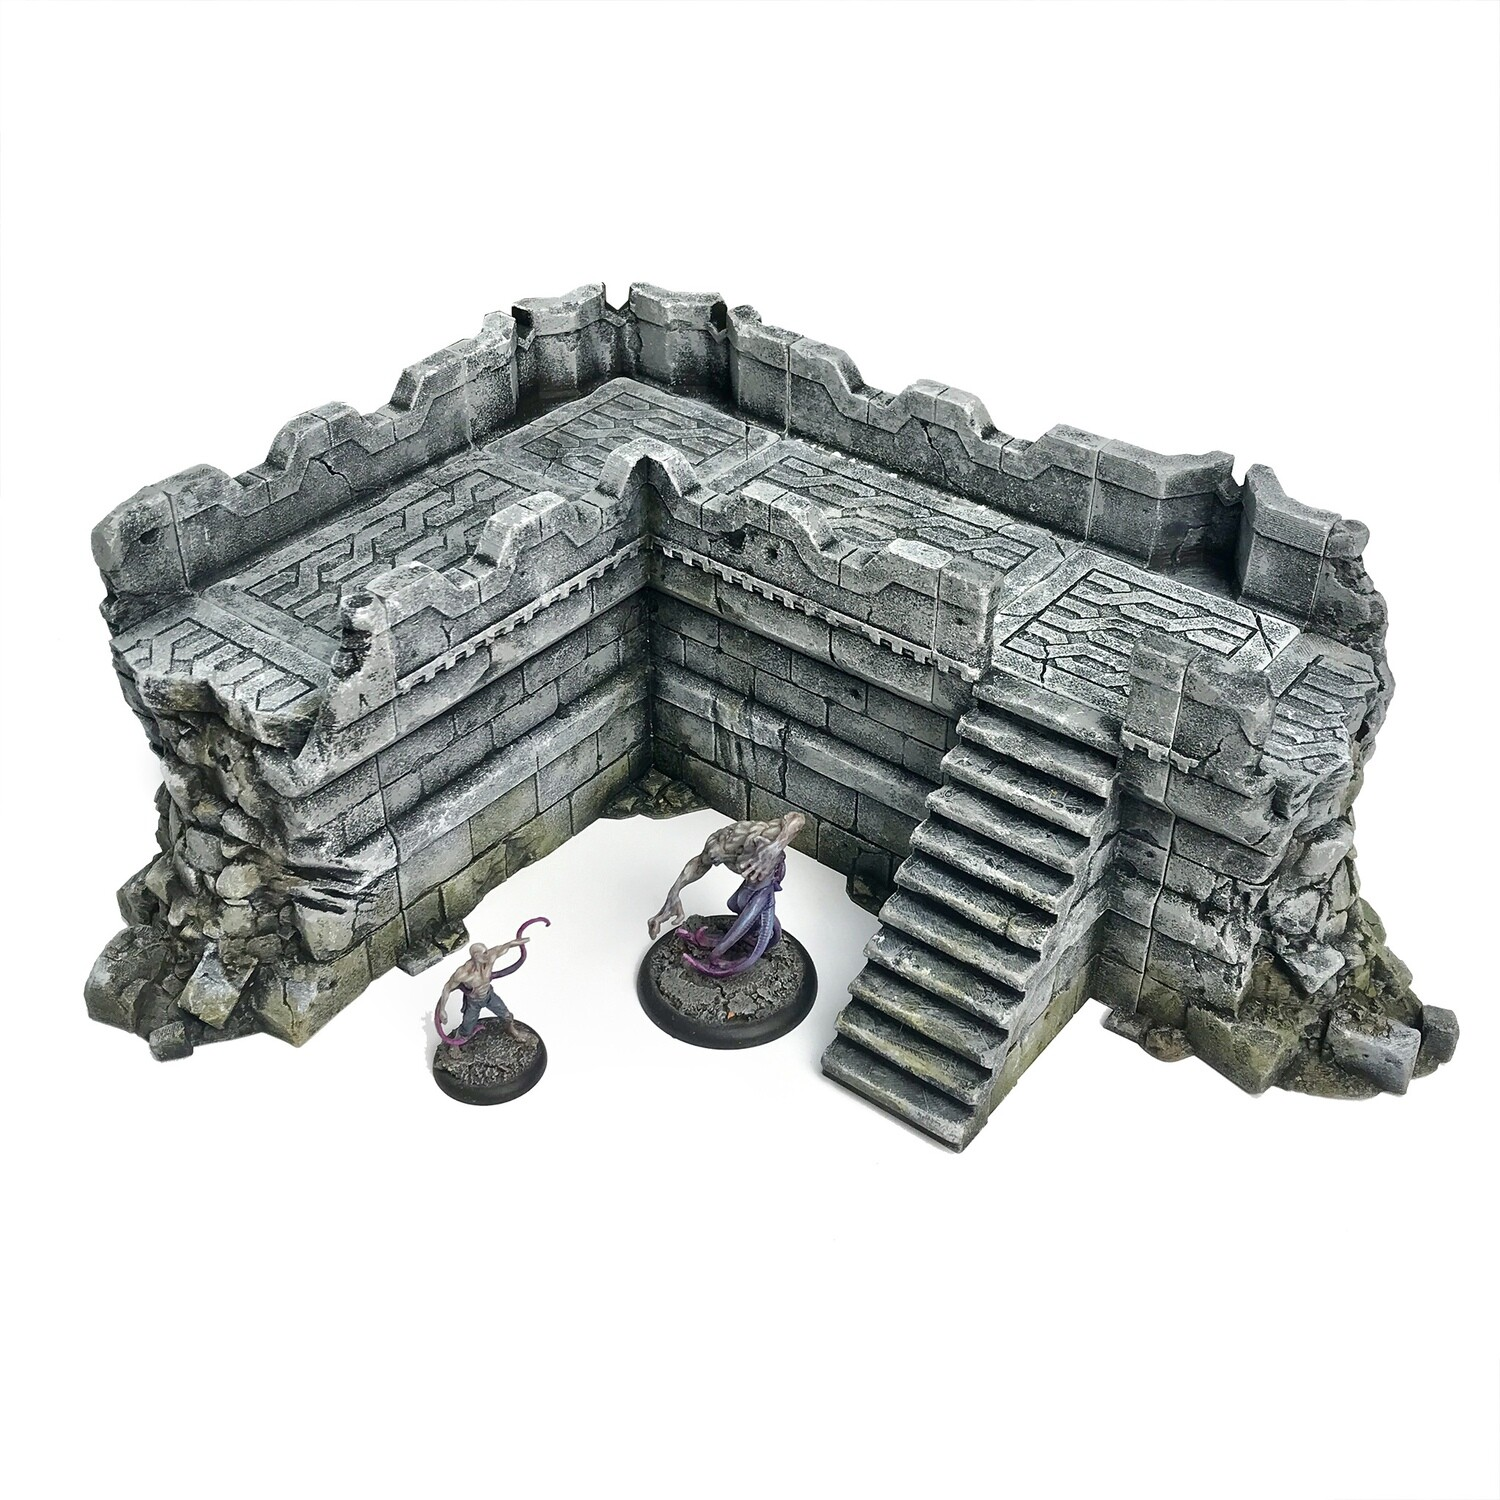 Stronghold Large Ruined Wall - save 20%!